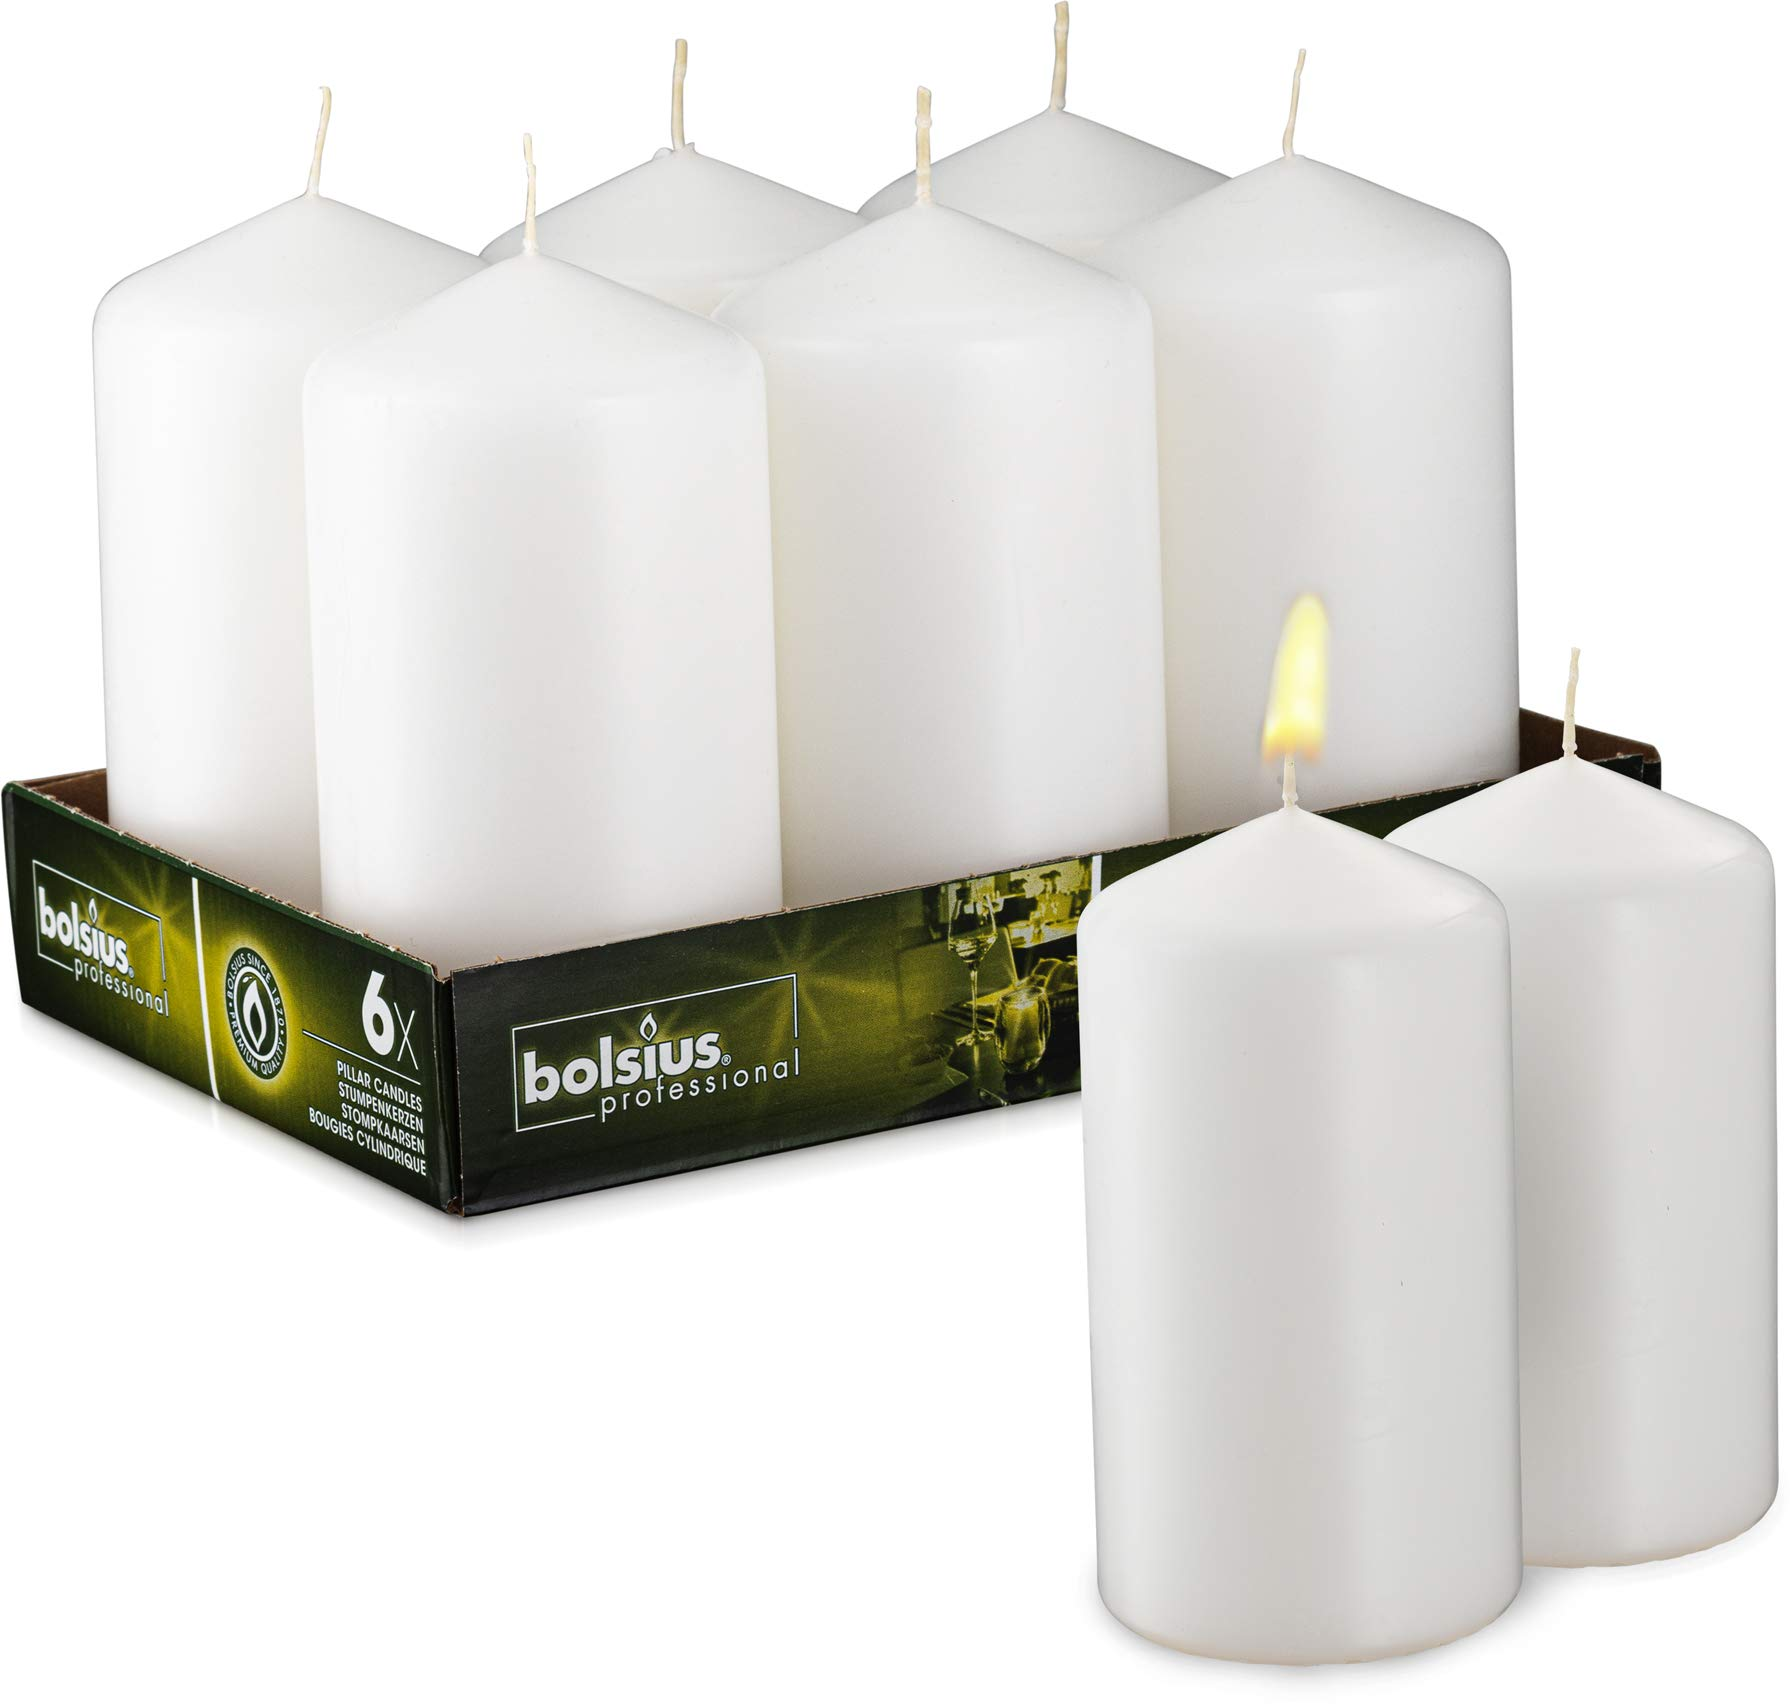 BOLSIUS Set of 6 White Unscented Pillar Candles - Large White Pillar Candle Set for Weddings, Parties and Special Occasion Décor - Non-drip White Candles with 65 Hours Burning Time - 3-inch x 6-inch by BOLSIUS